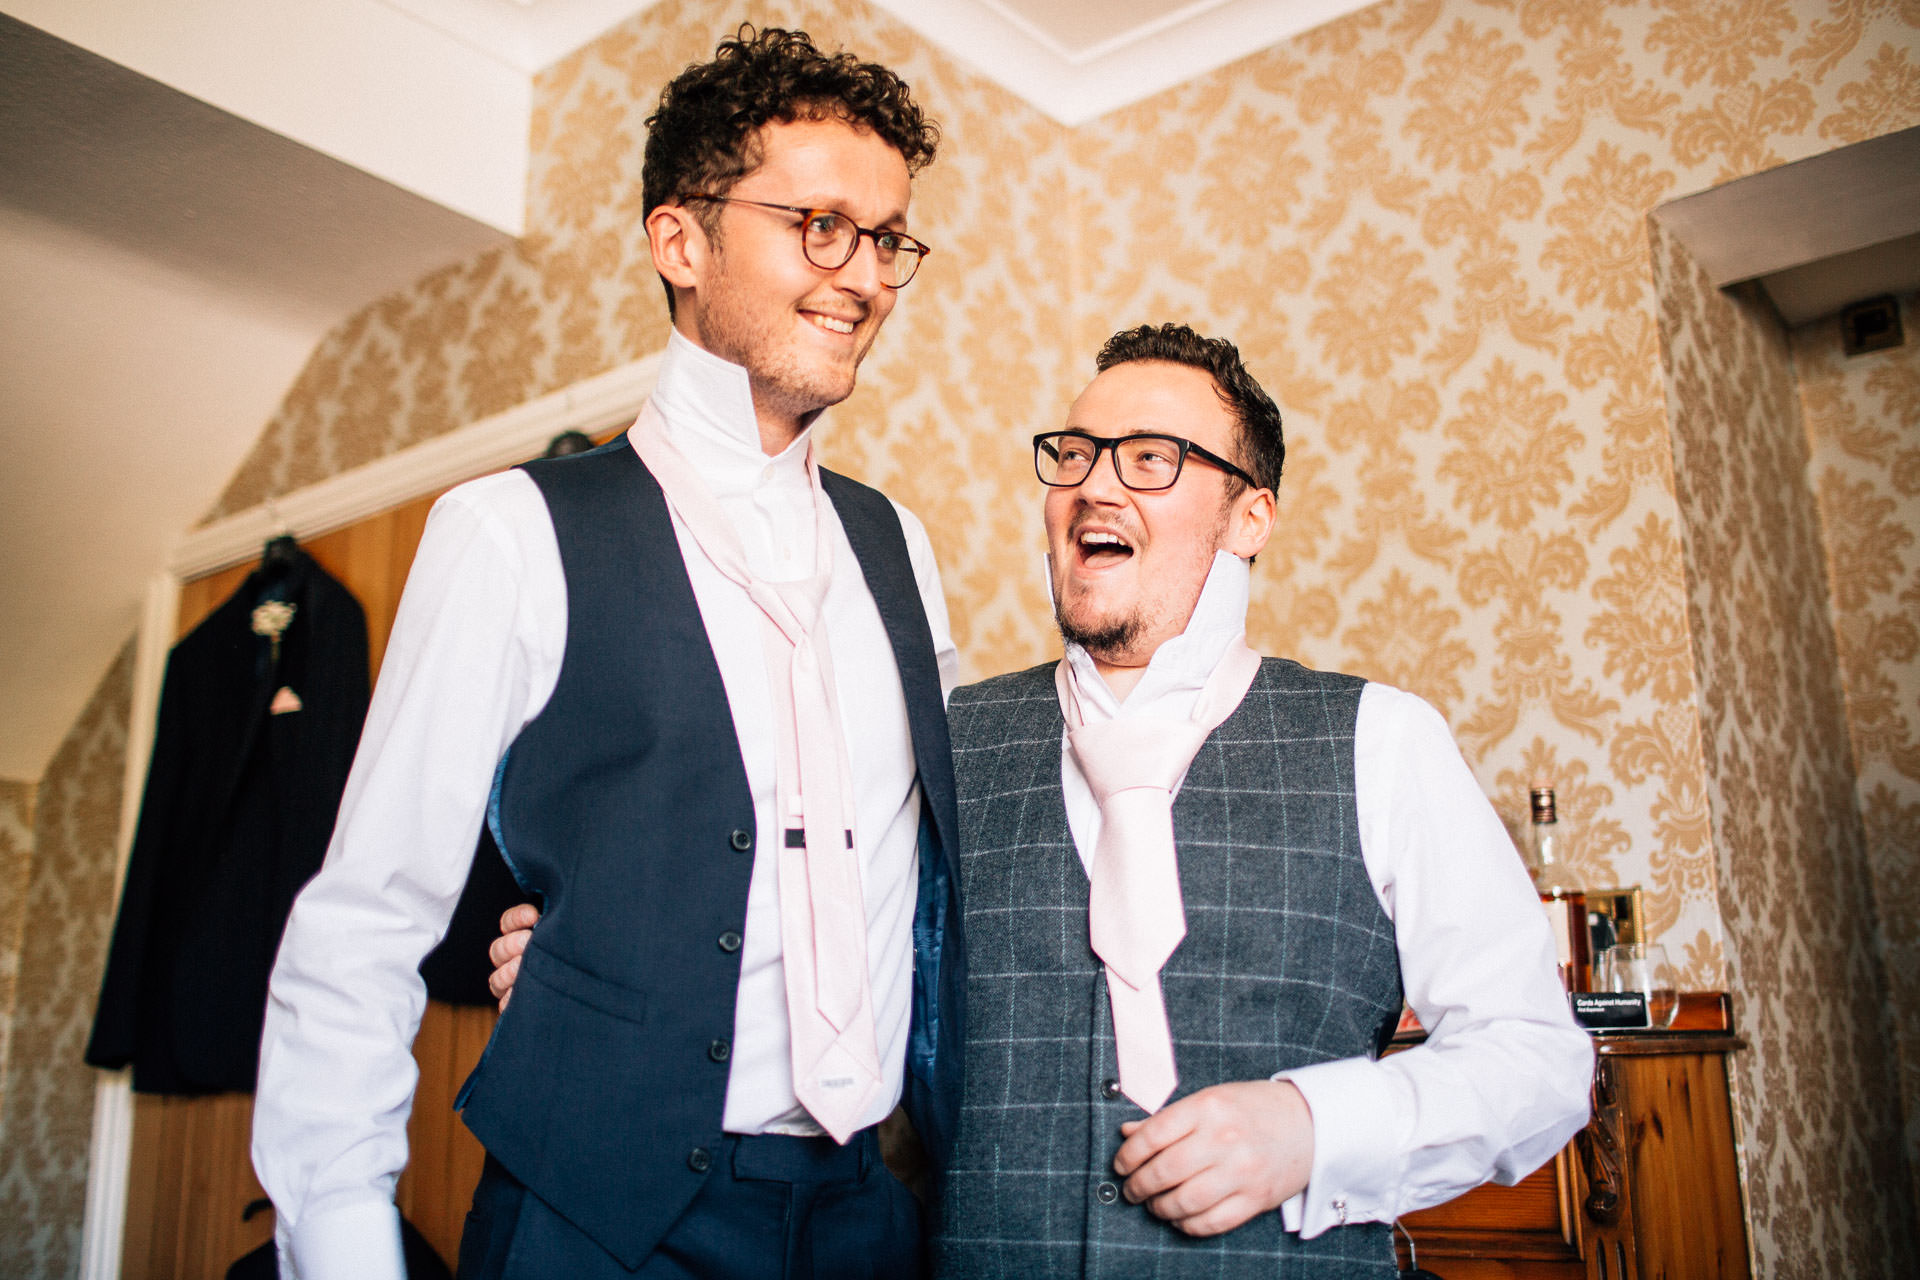 The Wild Boar Wedding Photography - EM - groom laughing at terrible ties